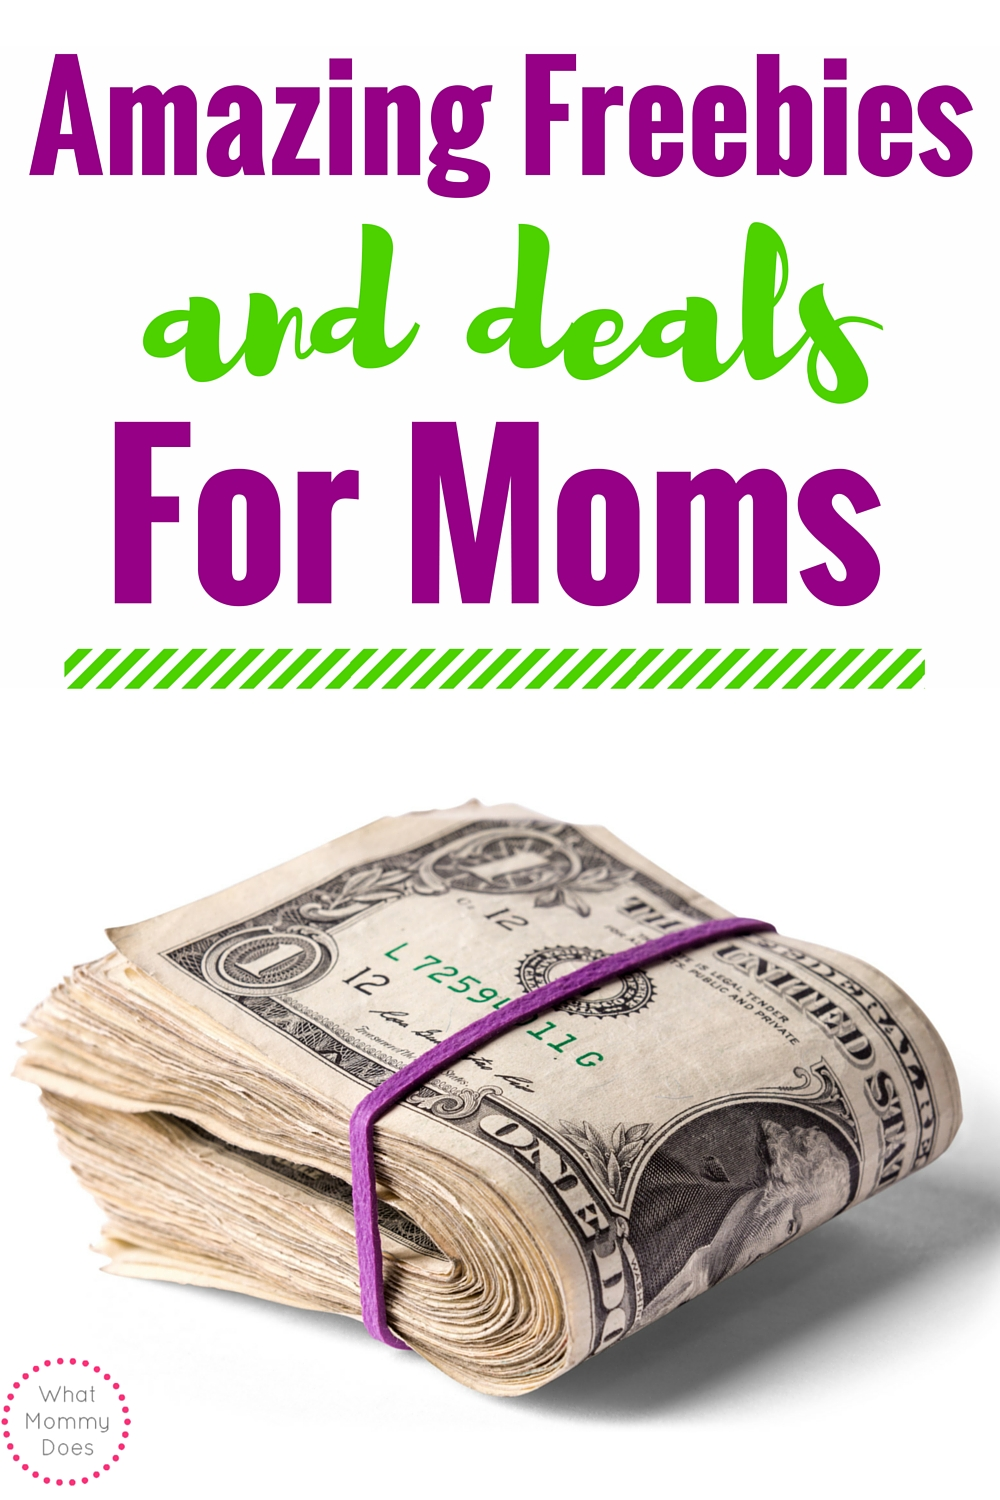 Free Stuff for Moms and Kids - There is over $275 worth of freebies for moms here! Most of them are free baby items, but you may find someone for yourself too.